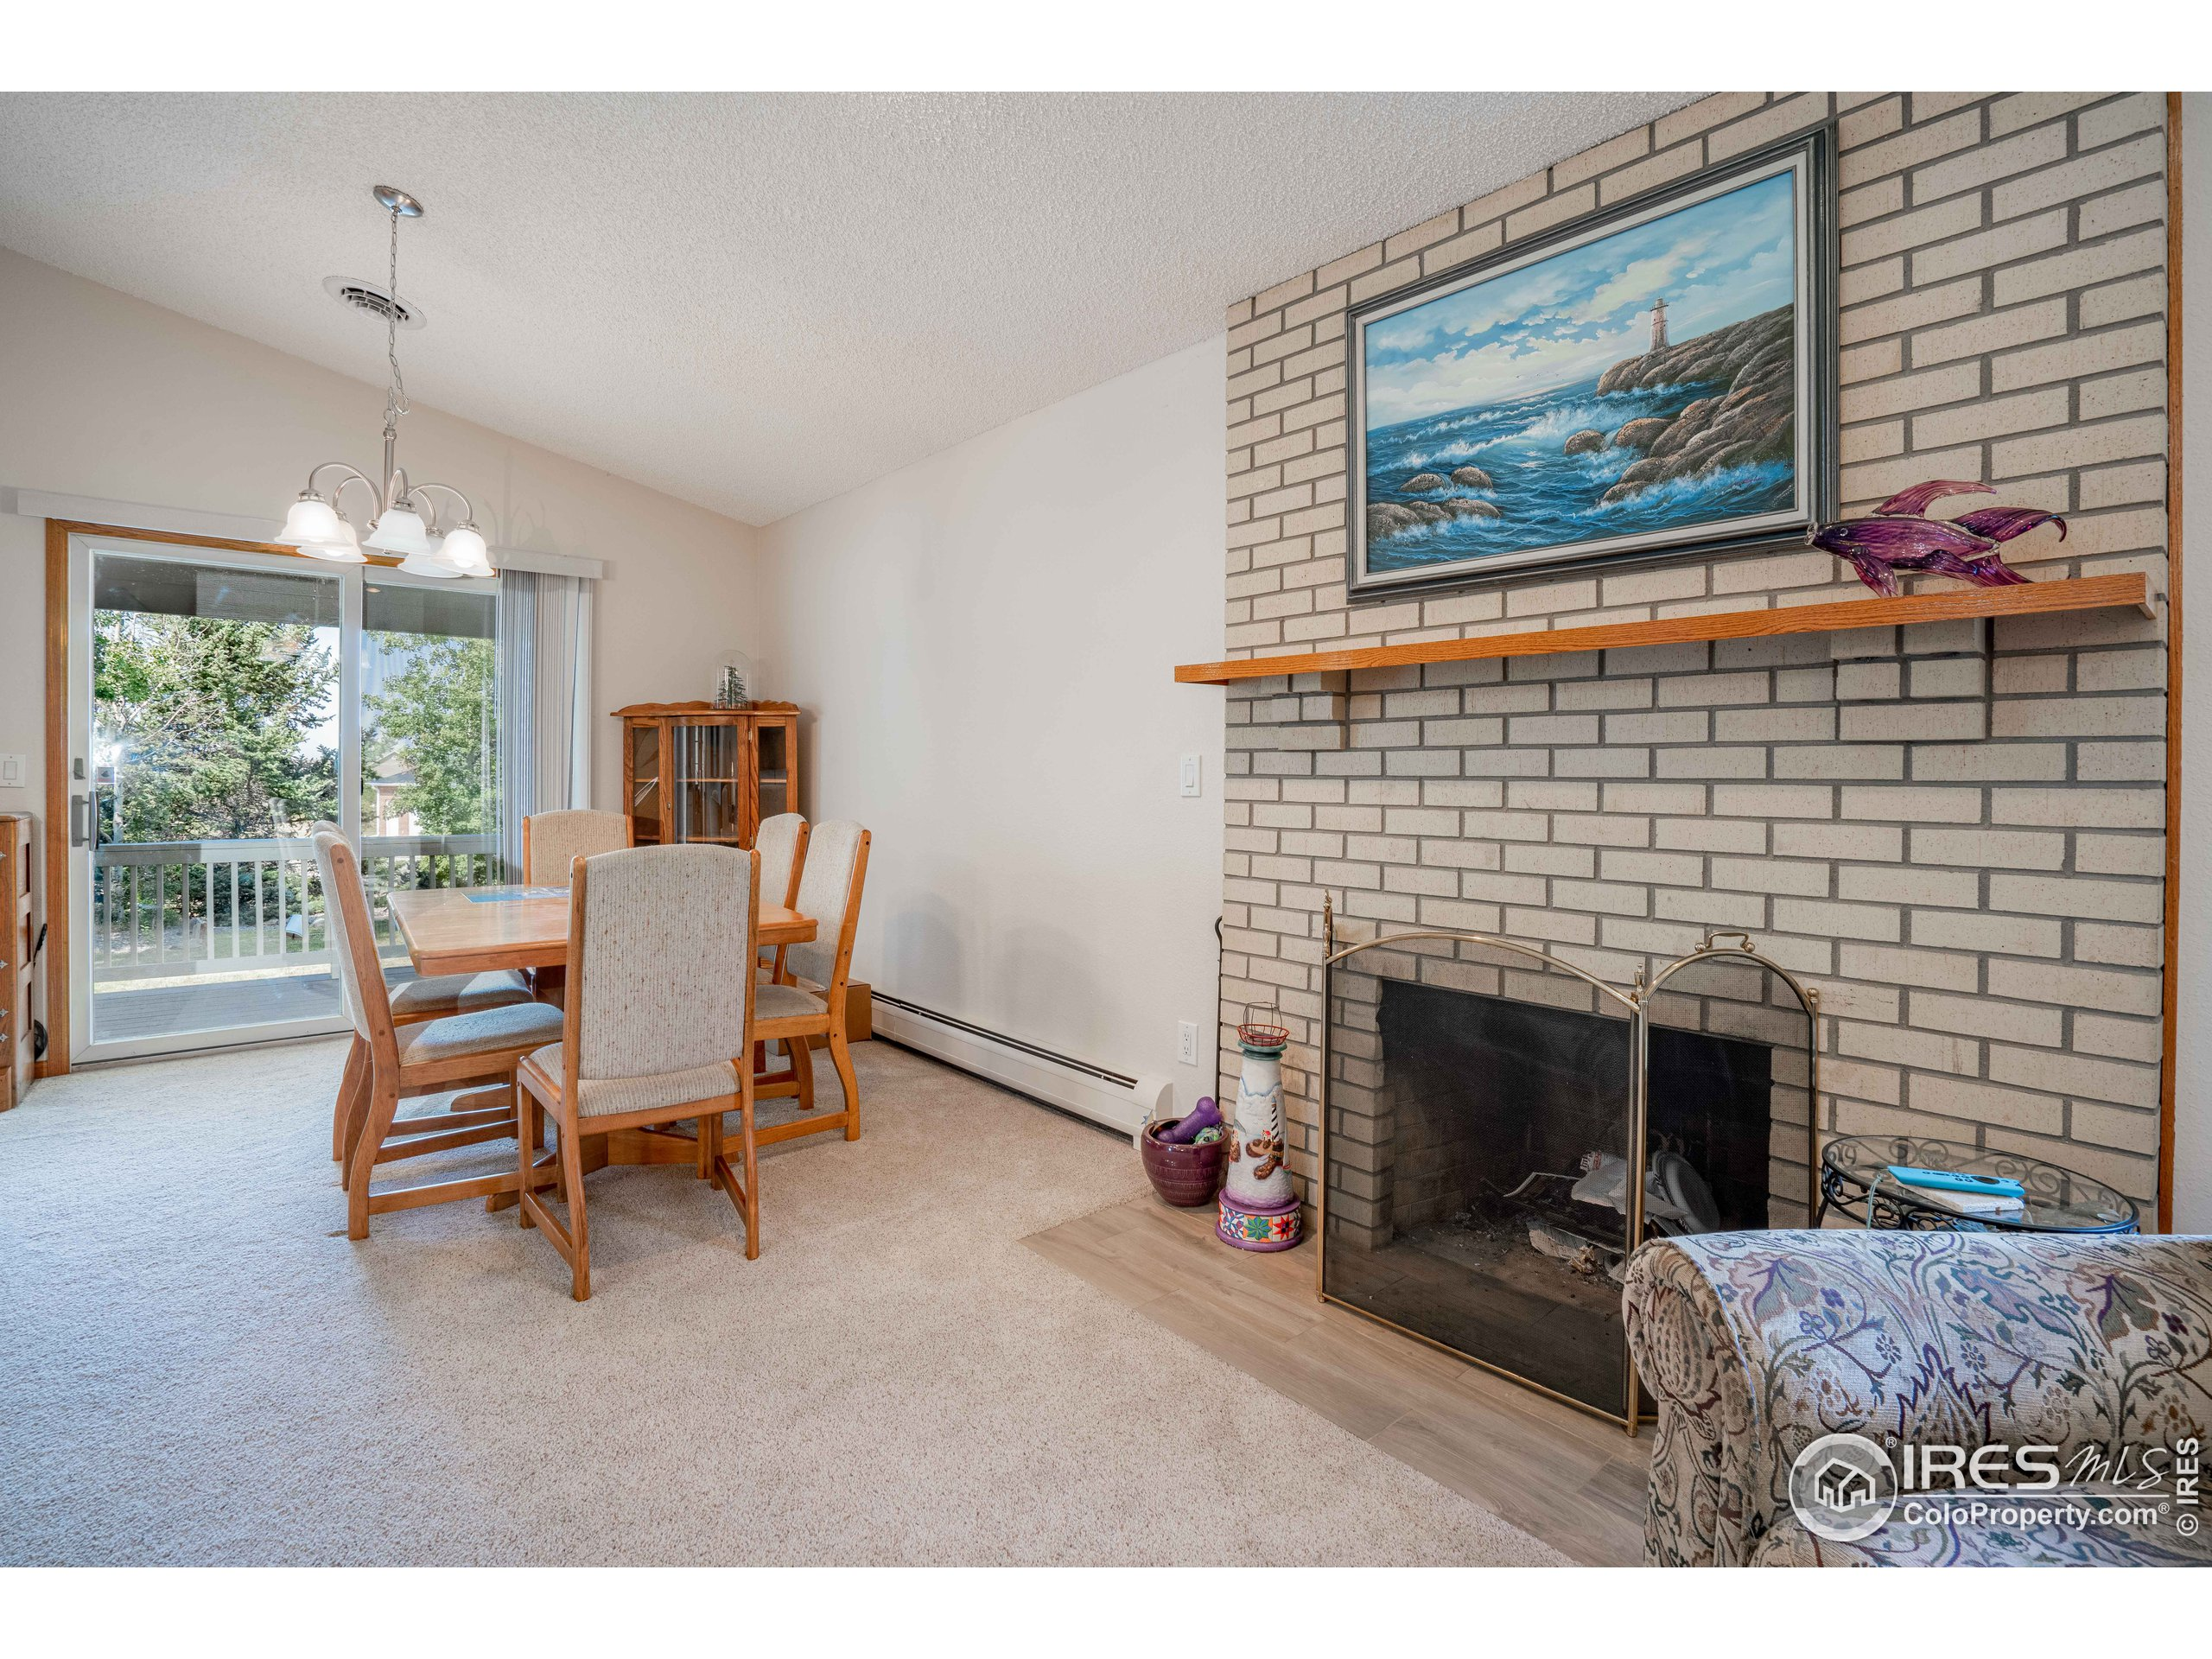 Cozy Gas Fireplace shared by Living, Dining Rooms